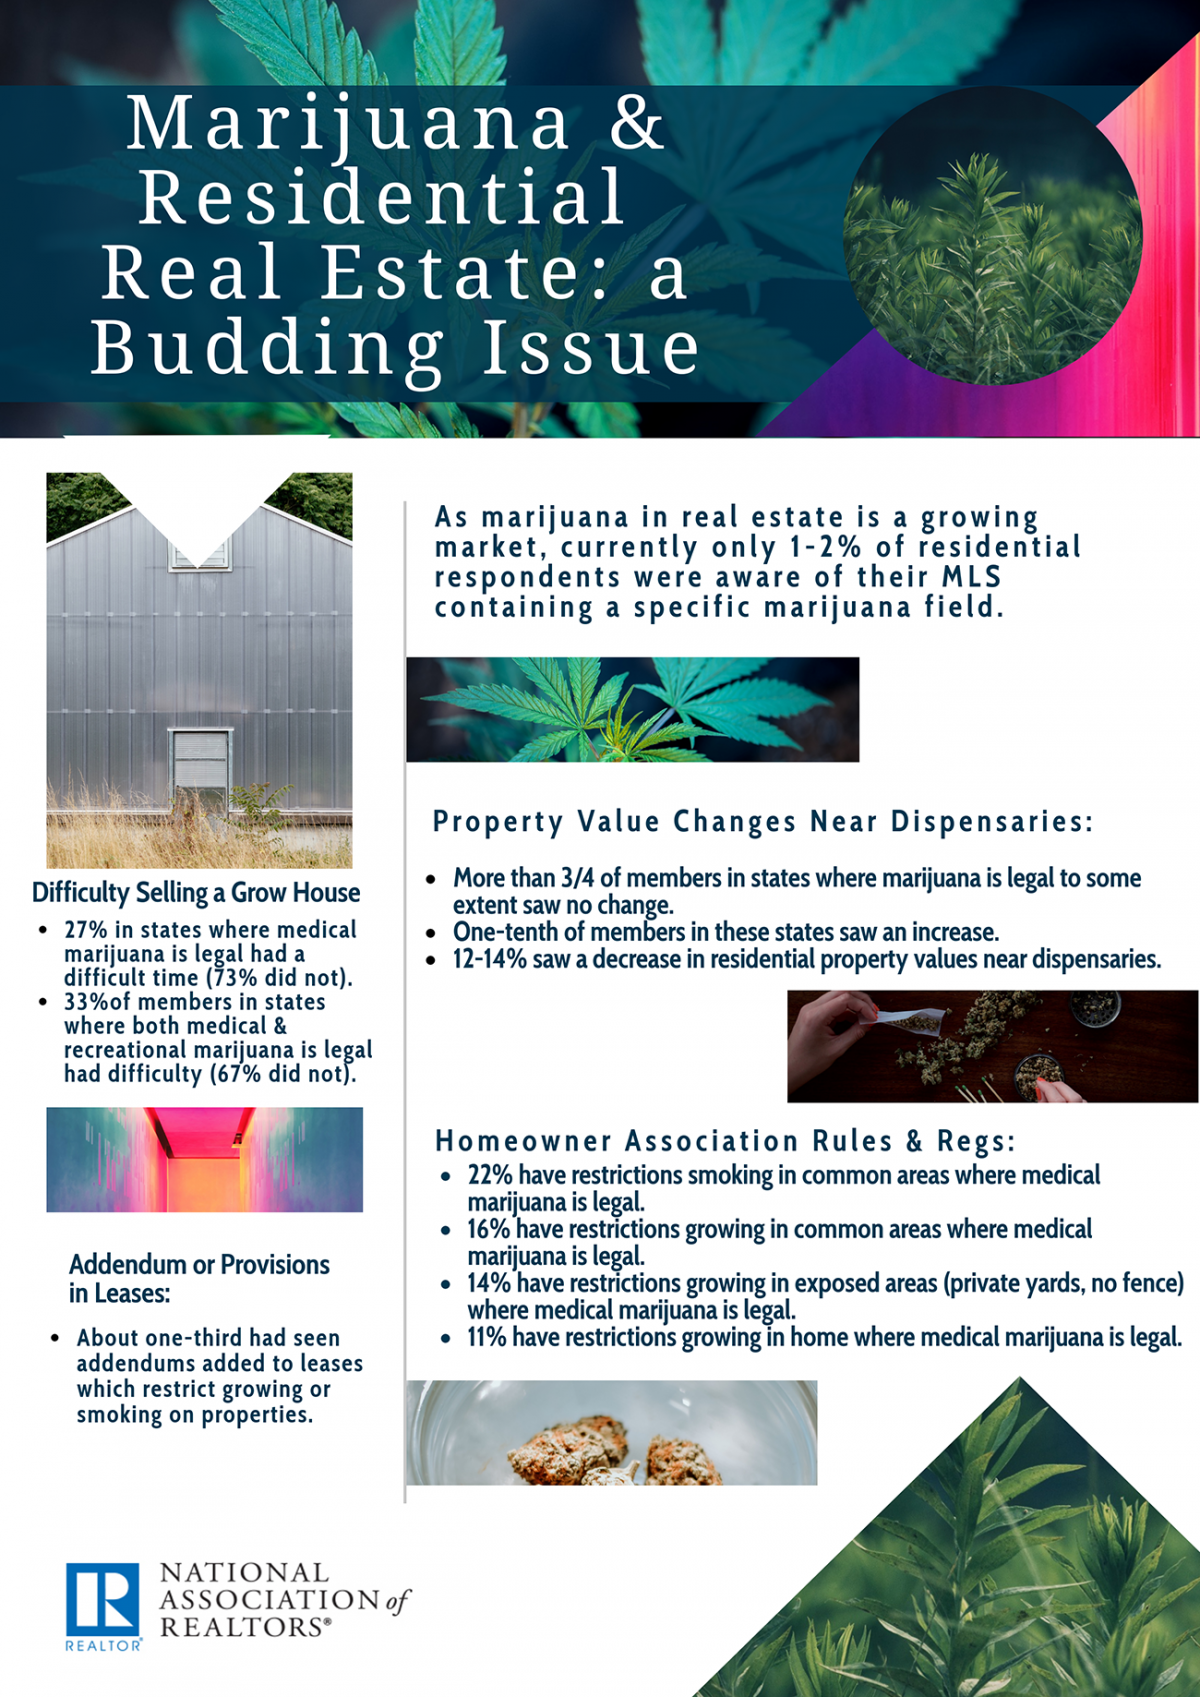 2018 Marijuana and Residential Real Estate infographic 1300w 1838h